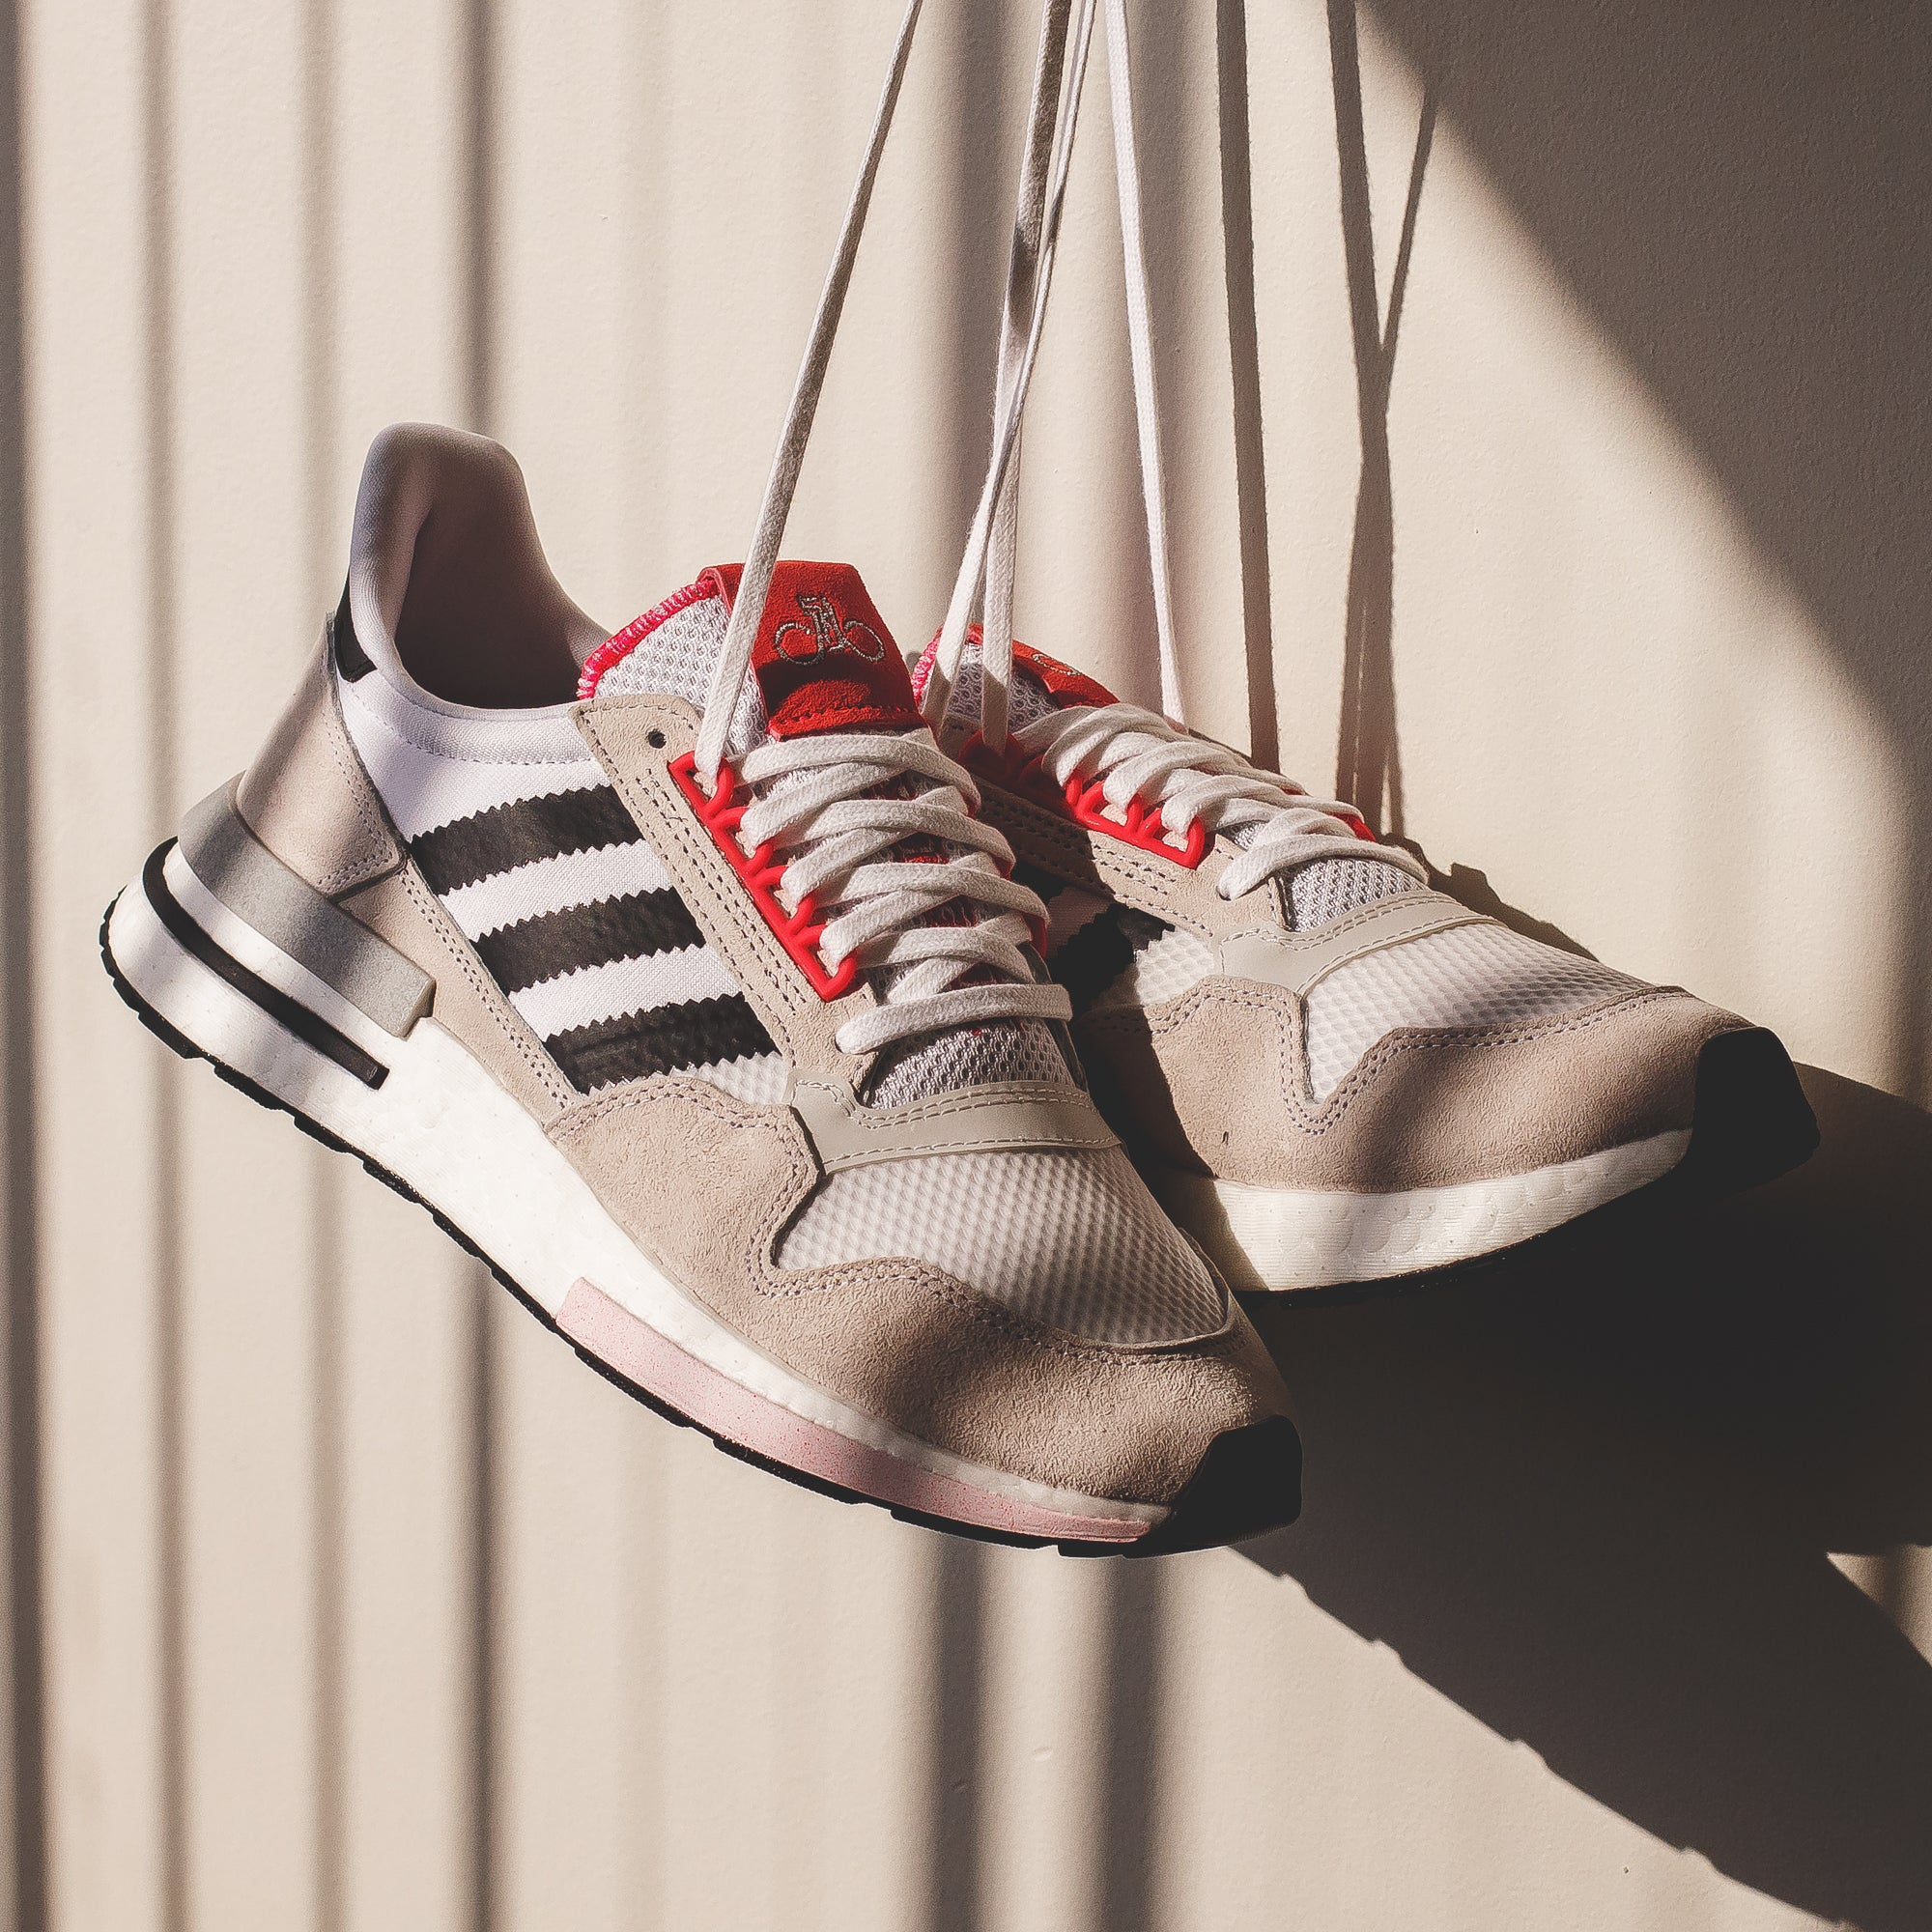 reputable site 7ffb2 c0336 Adidas Originals - ZX 500 RM Boost x Yongjiu Forever Bicycle G27577. Price  230 CAD. Available Sizing 7 - 13 US MENS